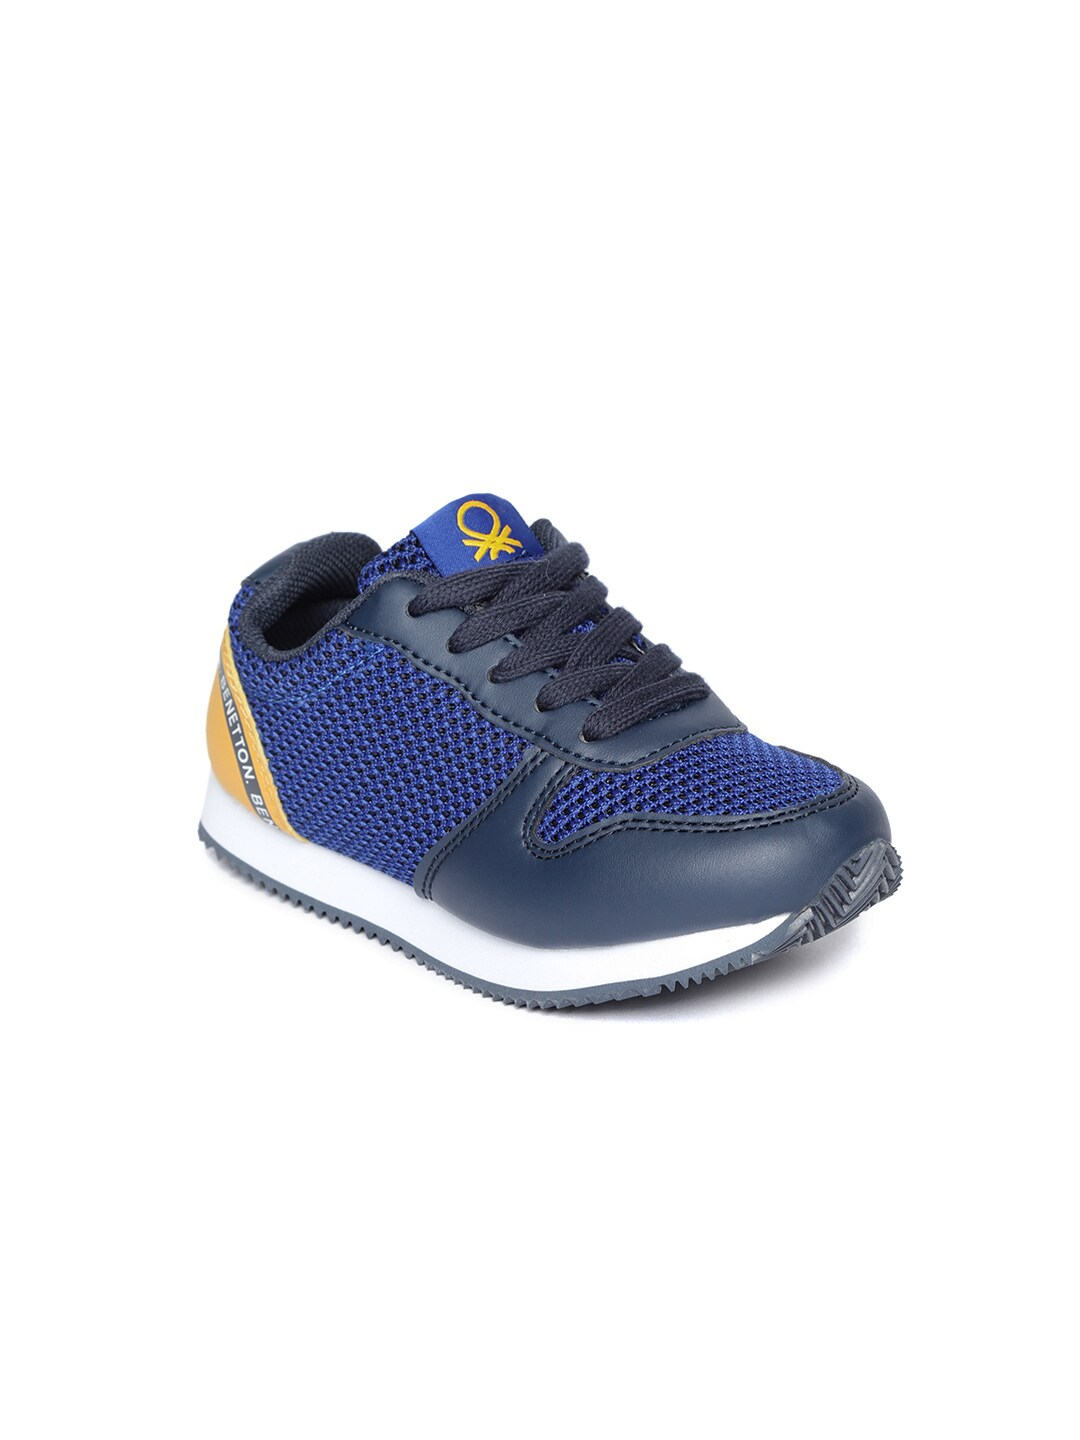 d991f5c0e84 United Colors Of Benetton Mesh And Pu Navy Blue Sneakers for Boys in ...